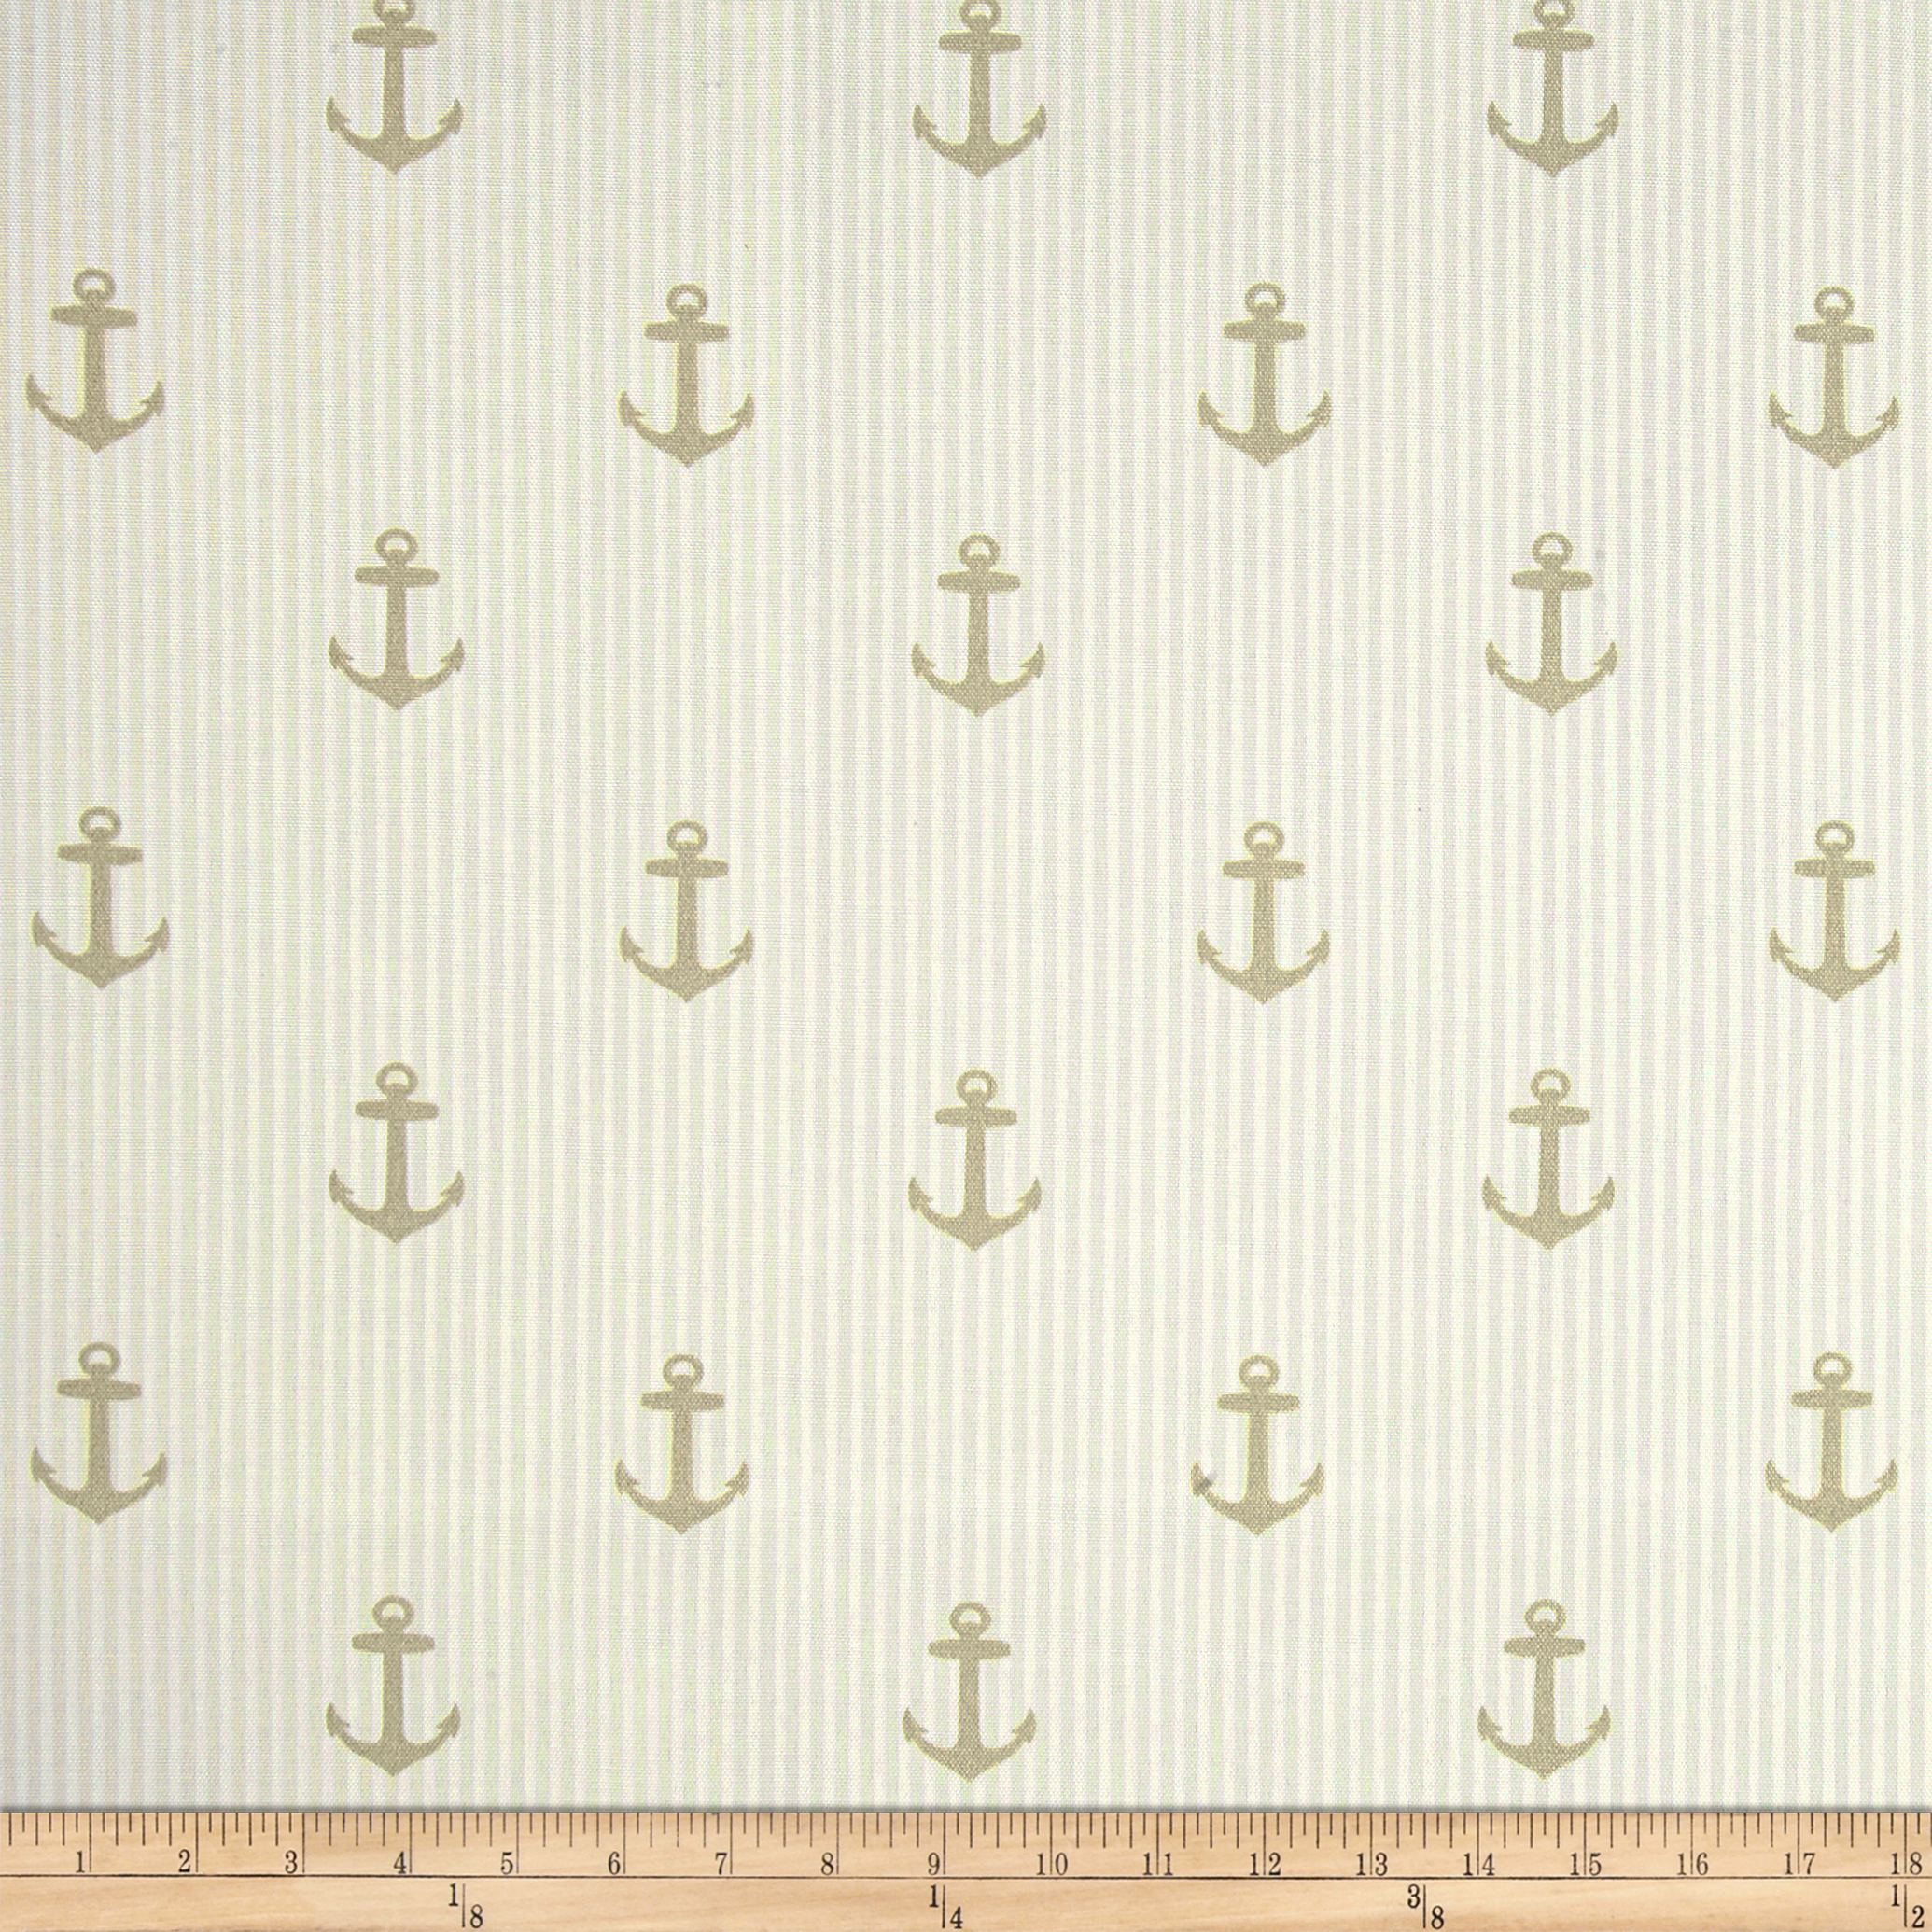 Covington Indoor/Outdoor Anchors Linen Fabric by Covington in USA